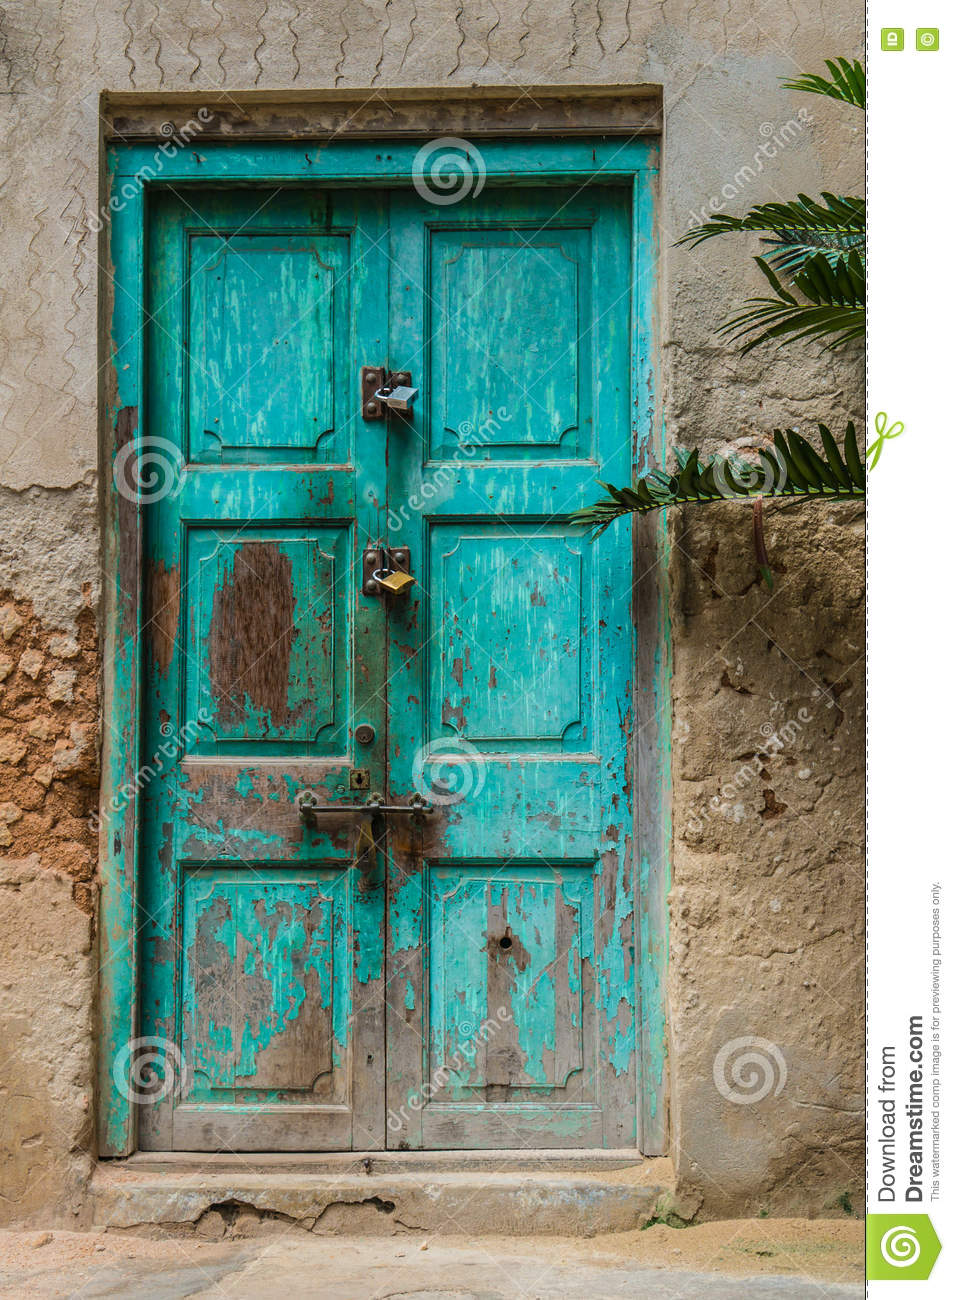 Turquise door turquoise door in trinidad cuba - Decoracion de casas antiguas ...